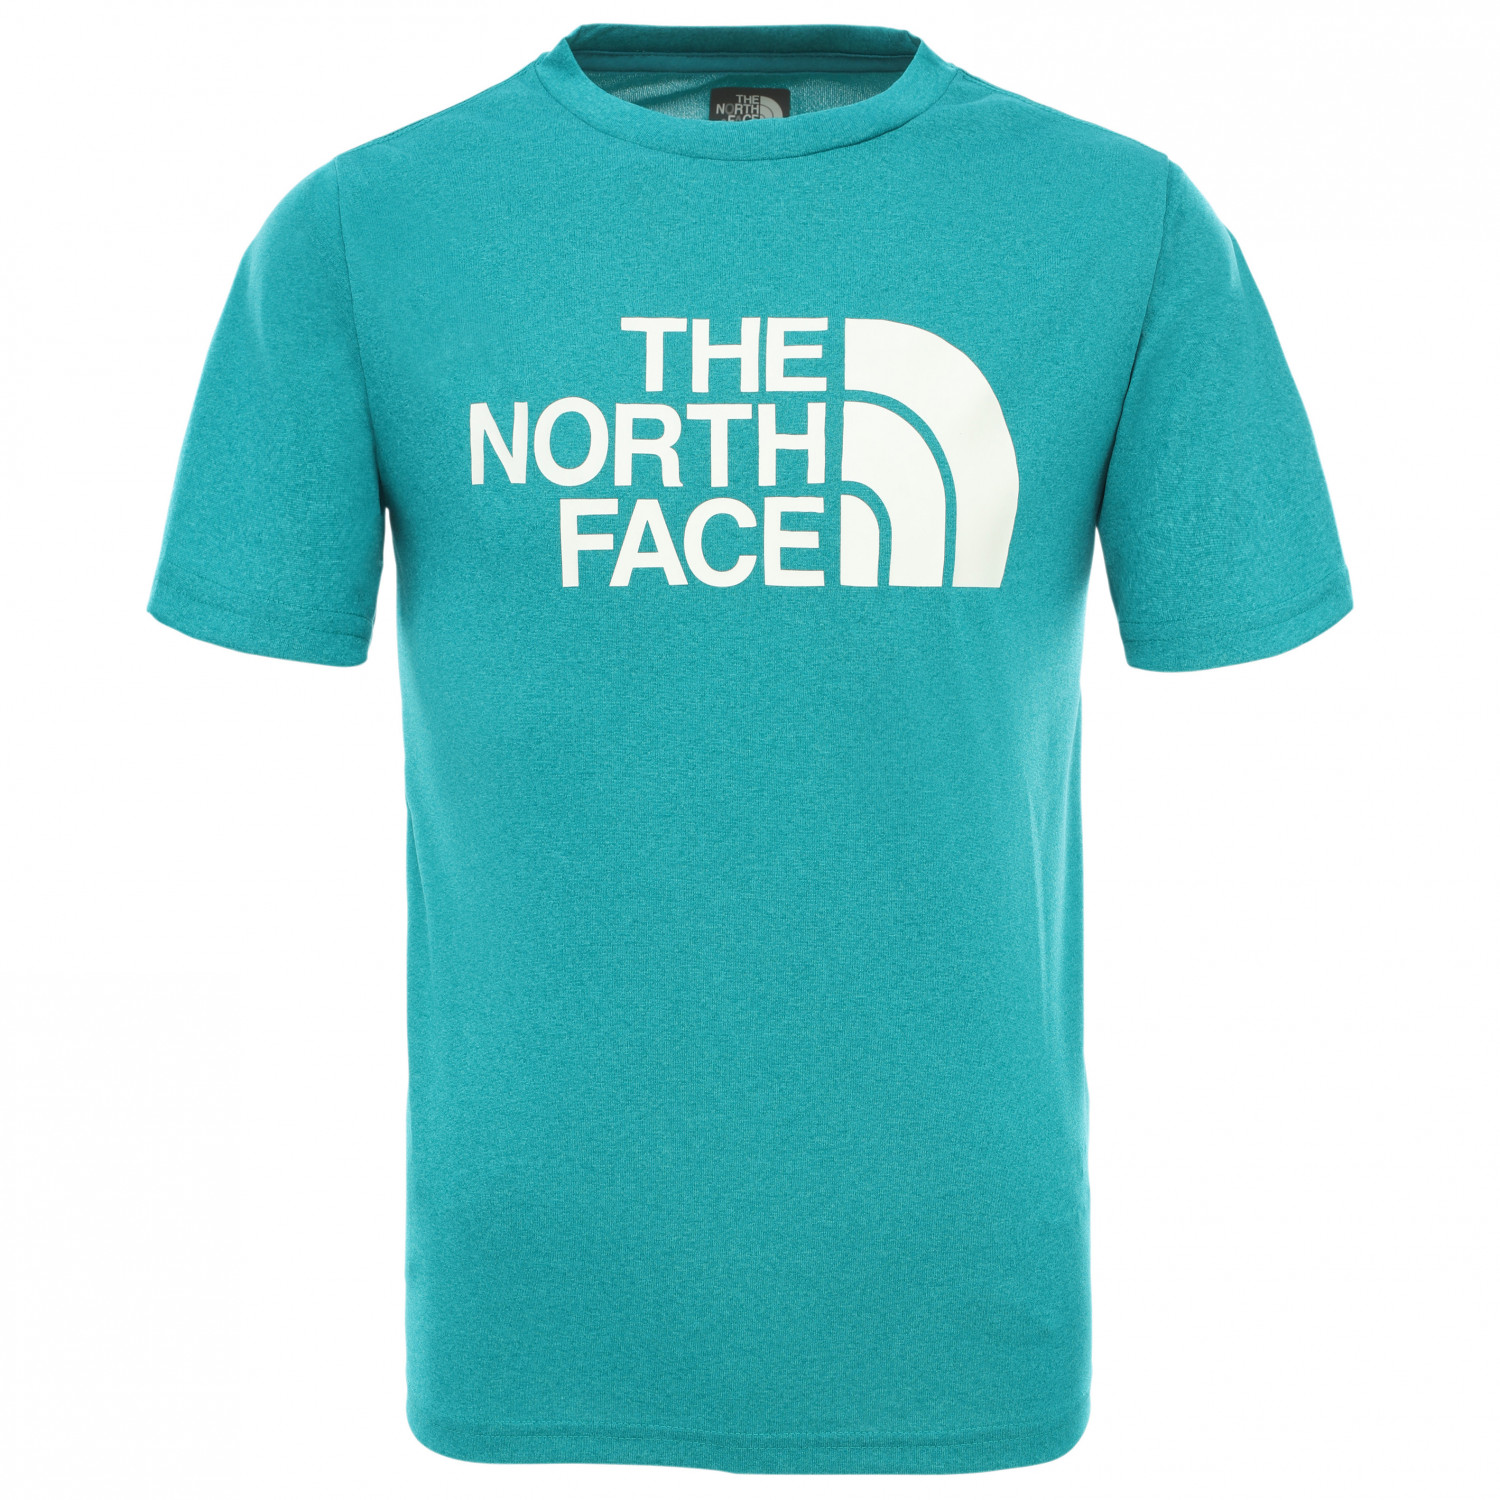 The North Face Reaxion Boys Outdoor T-Shirt